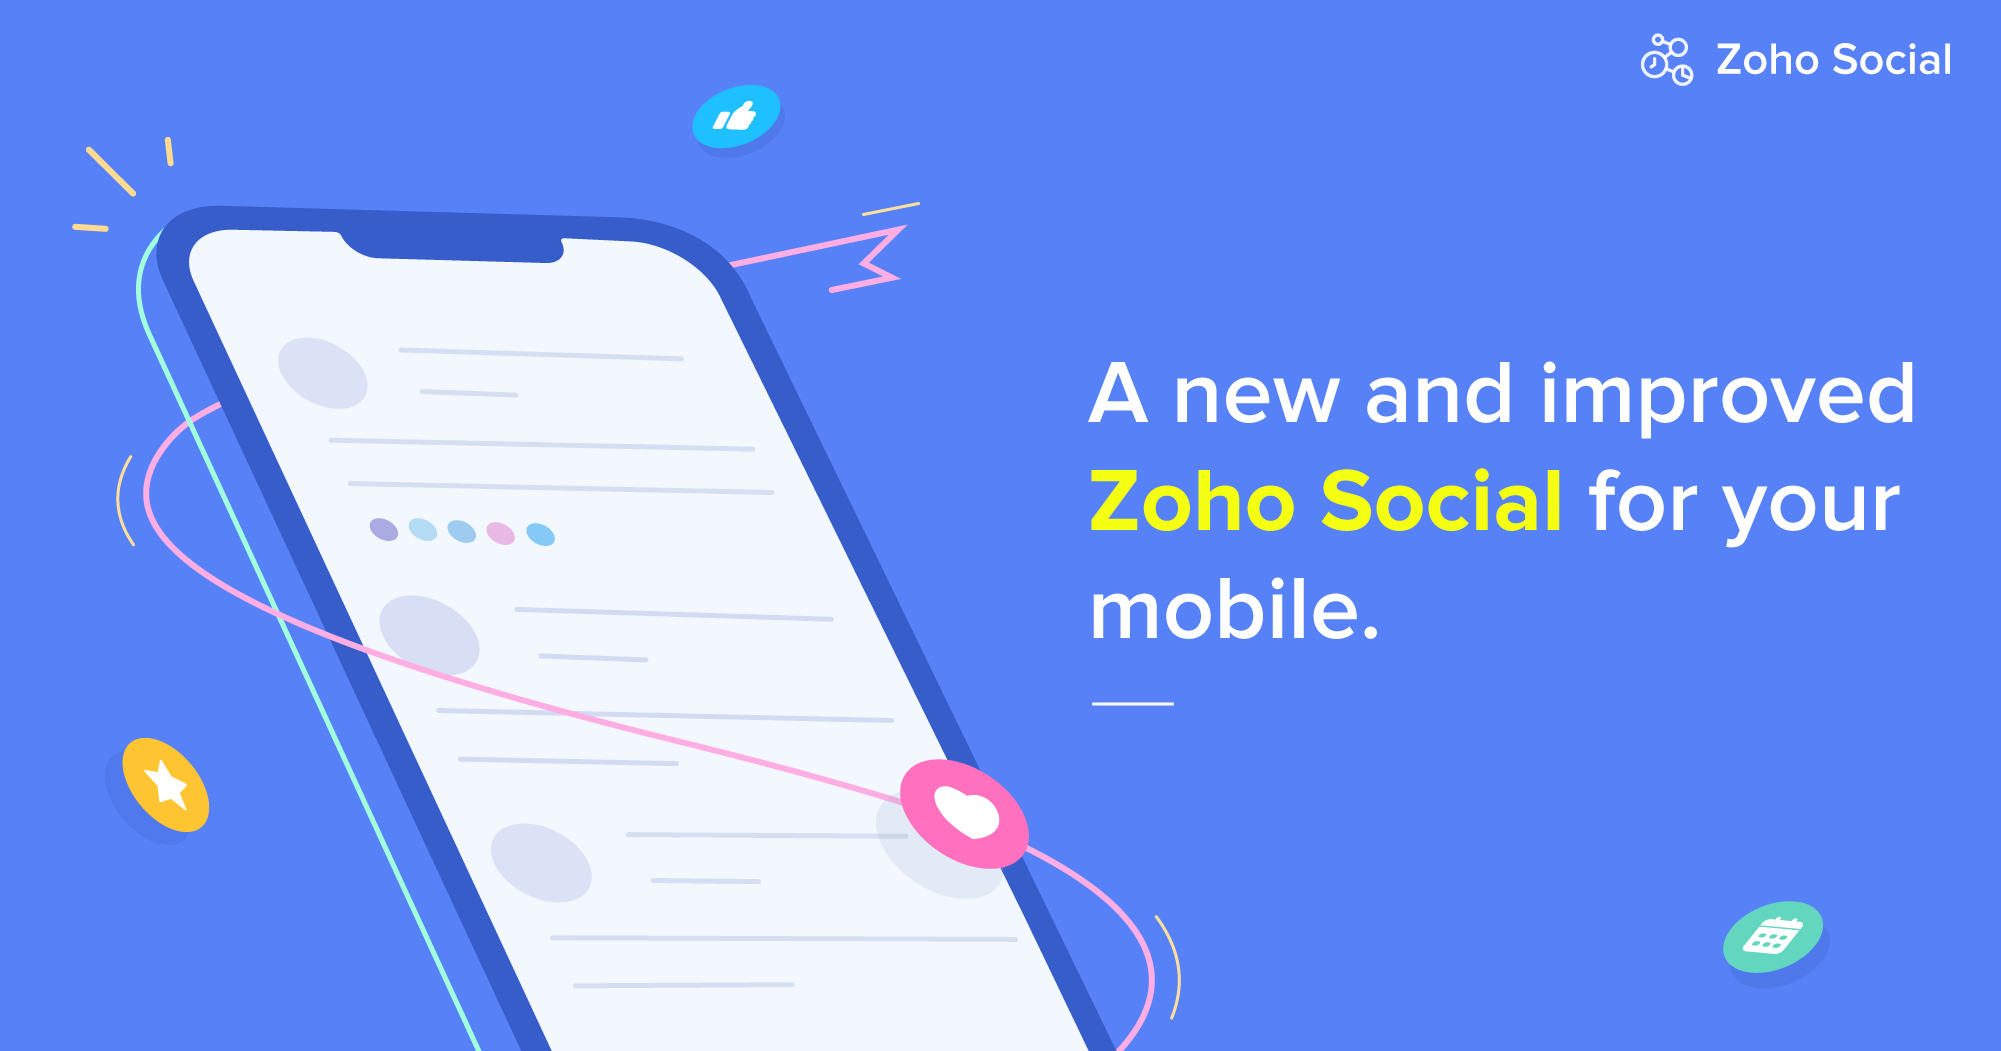 It's finally here!  An all-new Zoho Social for your mobile